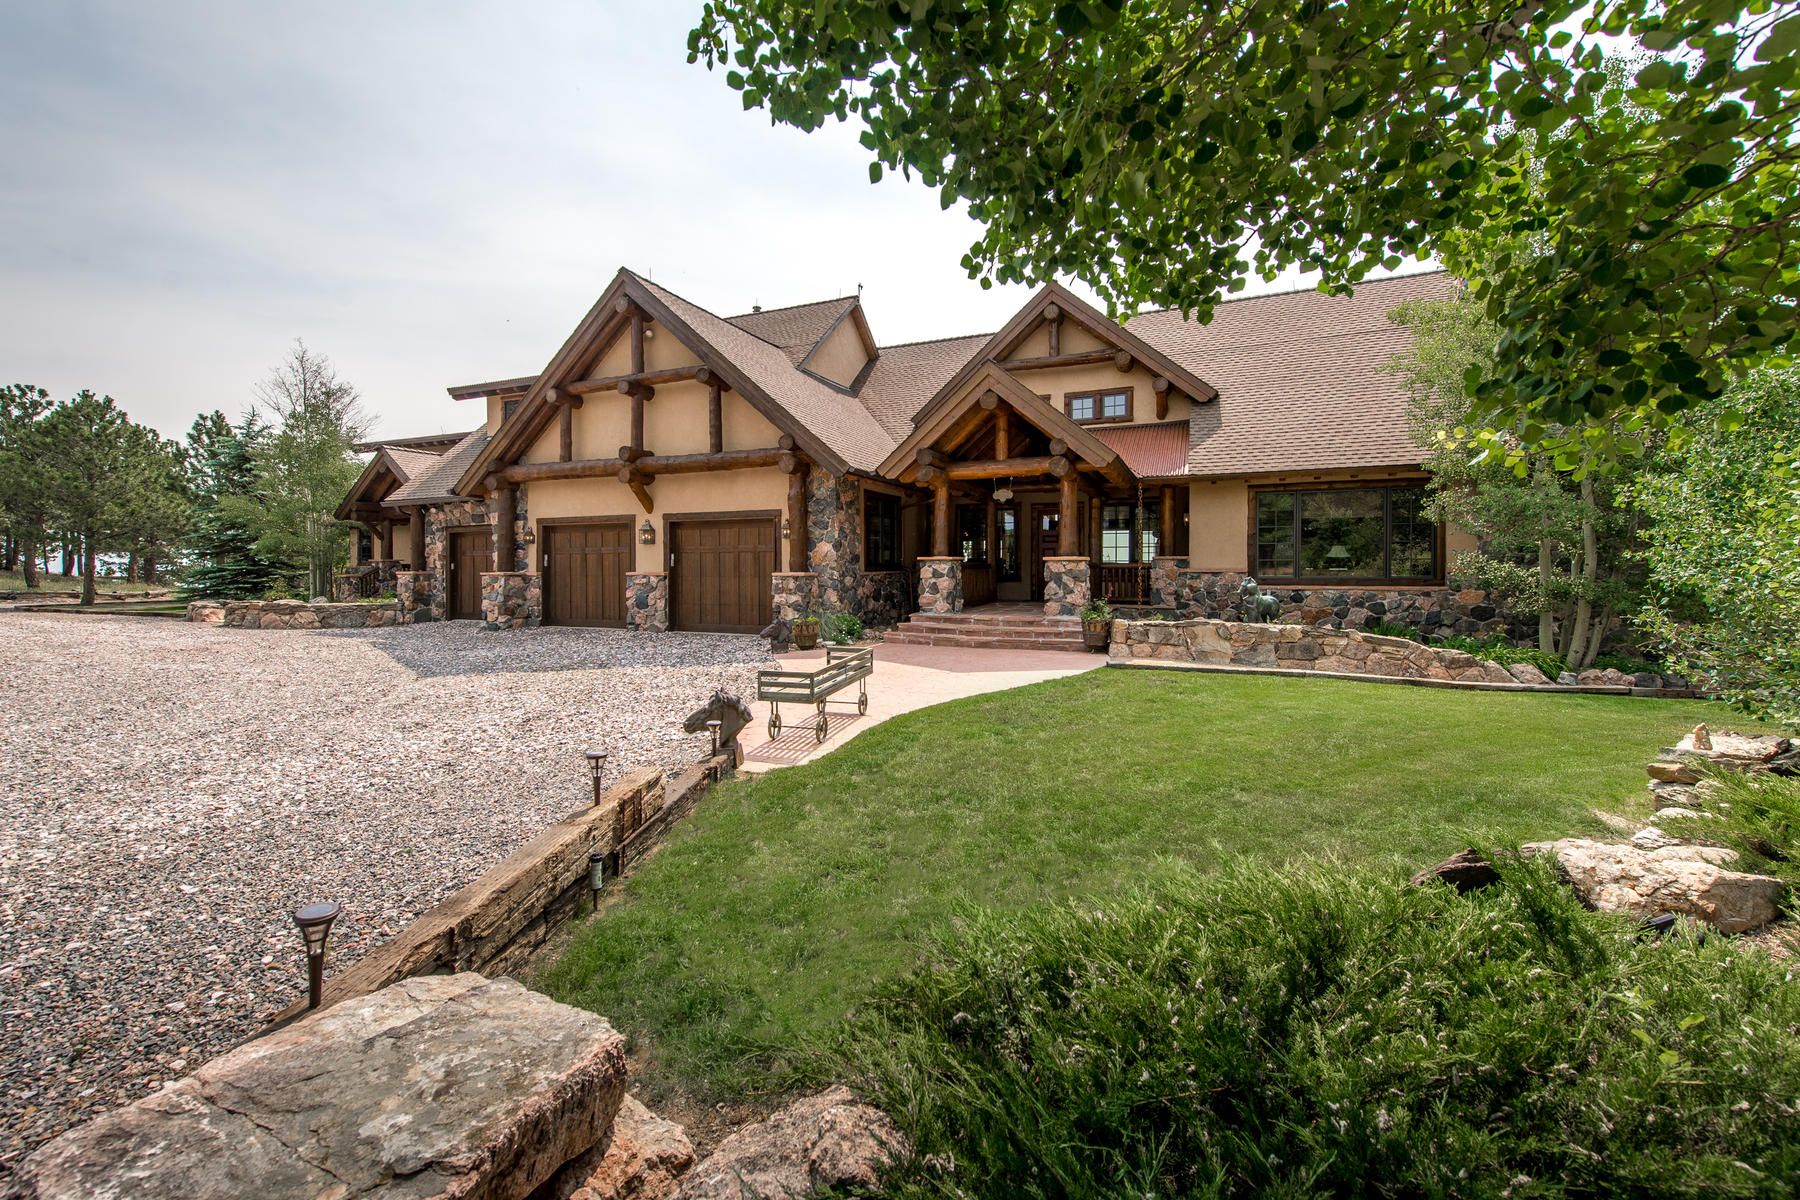 Property for Active at Off the beaten path in Golden Colorado 7775 Spirit Ranch Rd Golden, Colorado 80403 United States